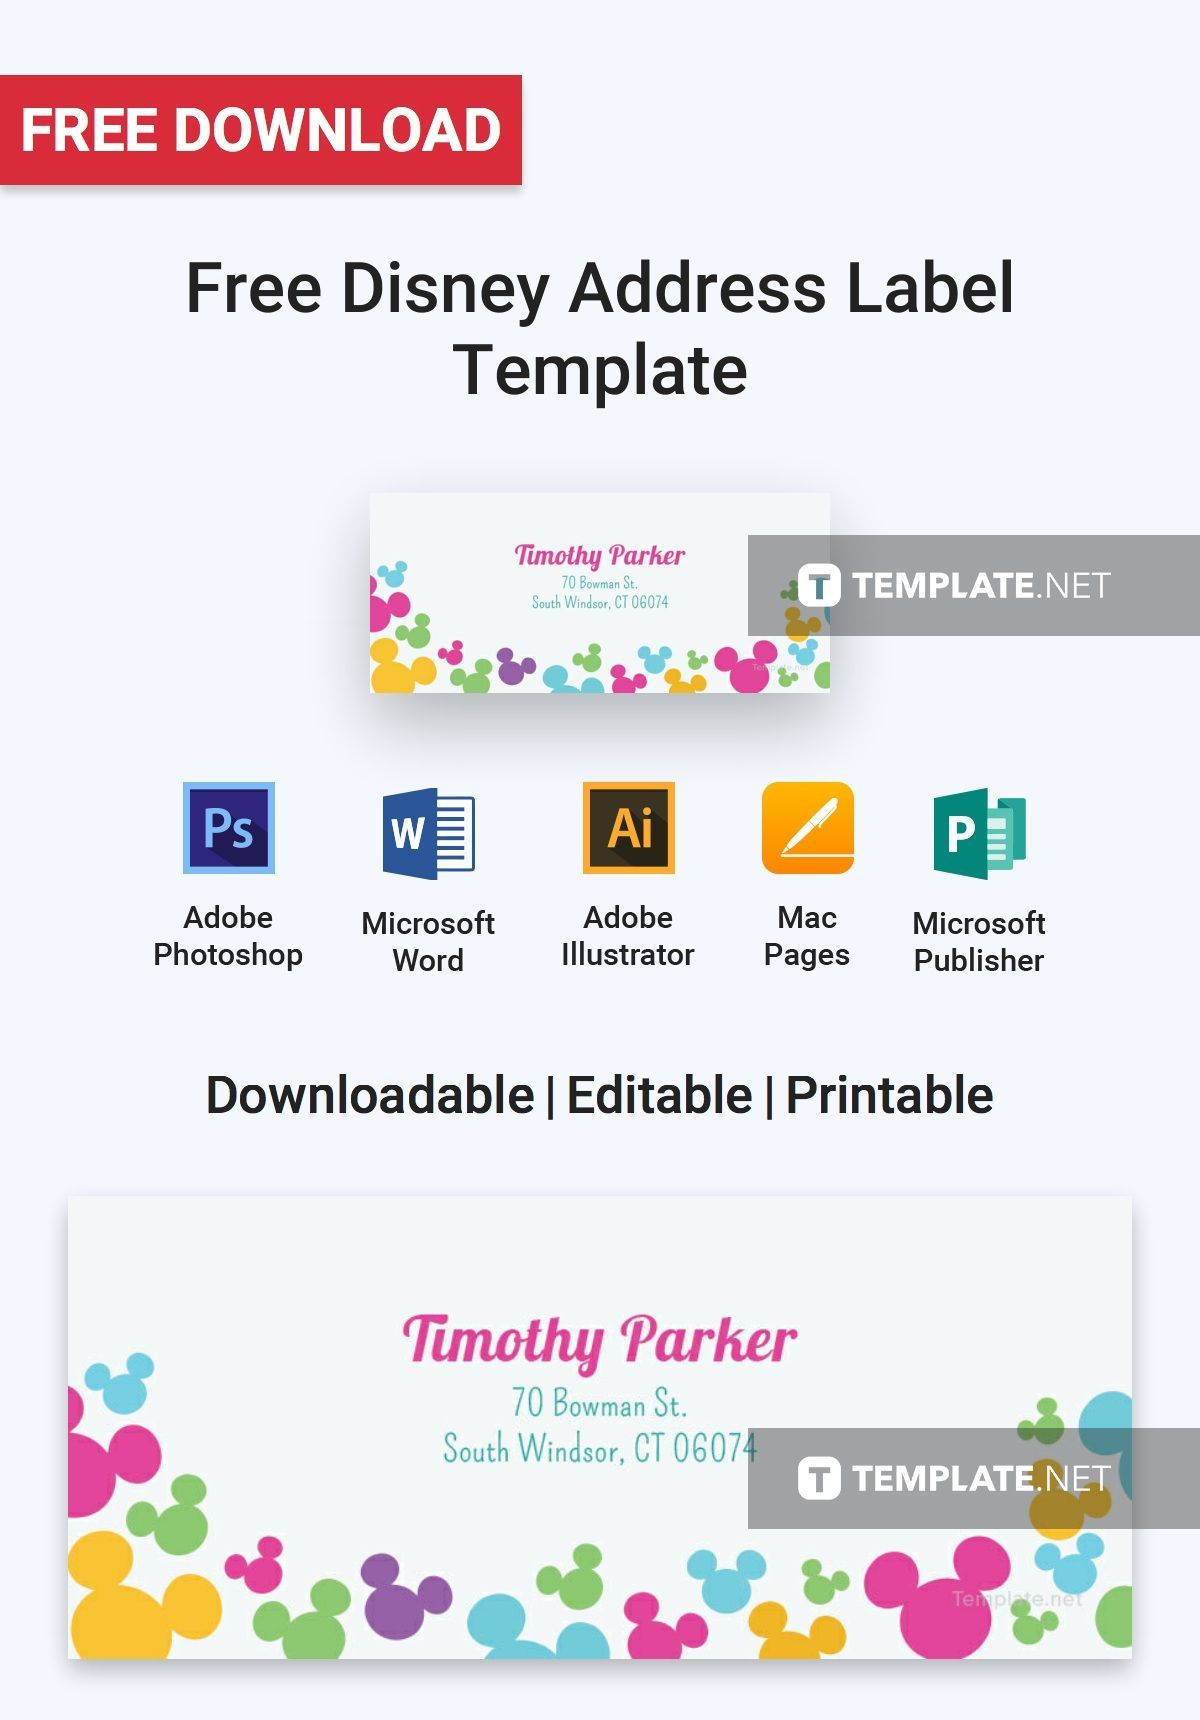 000 Frightening Addres Label Template For Mac Page Idea  Return Avery 5160